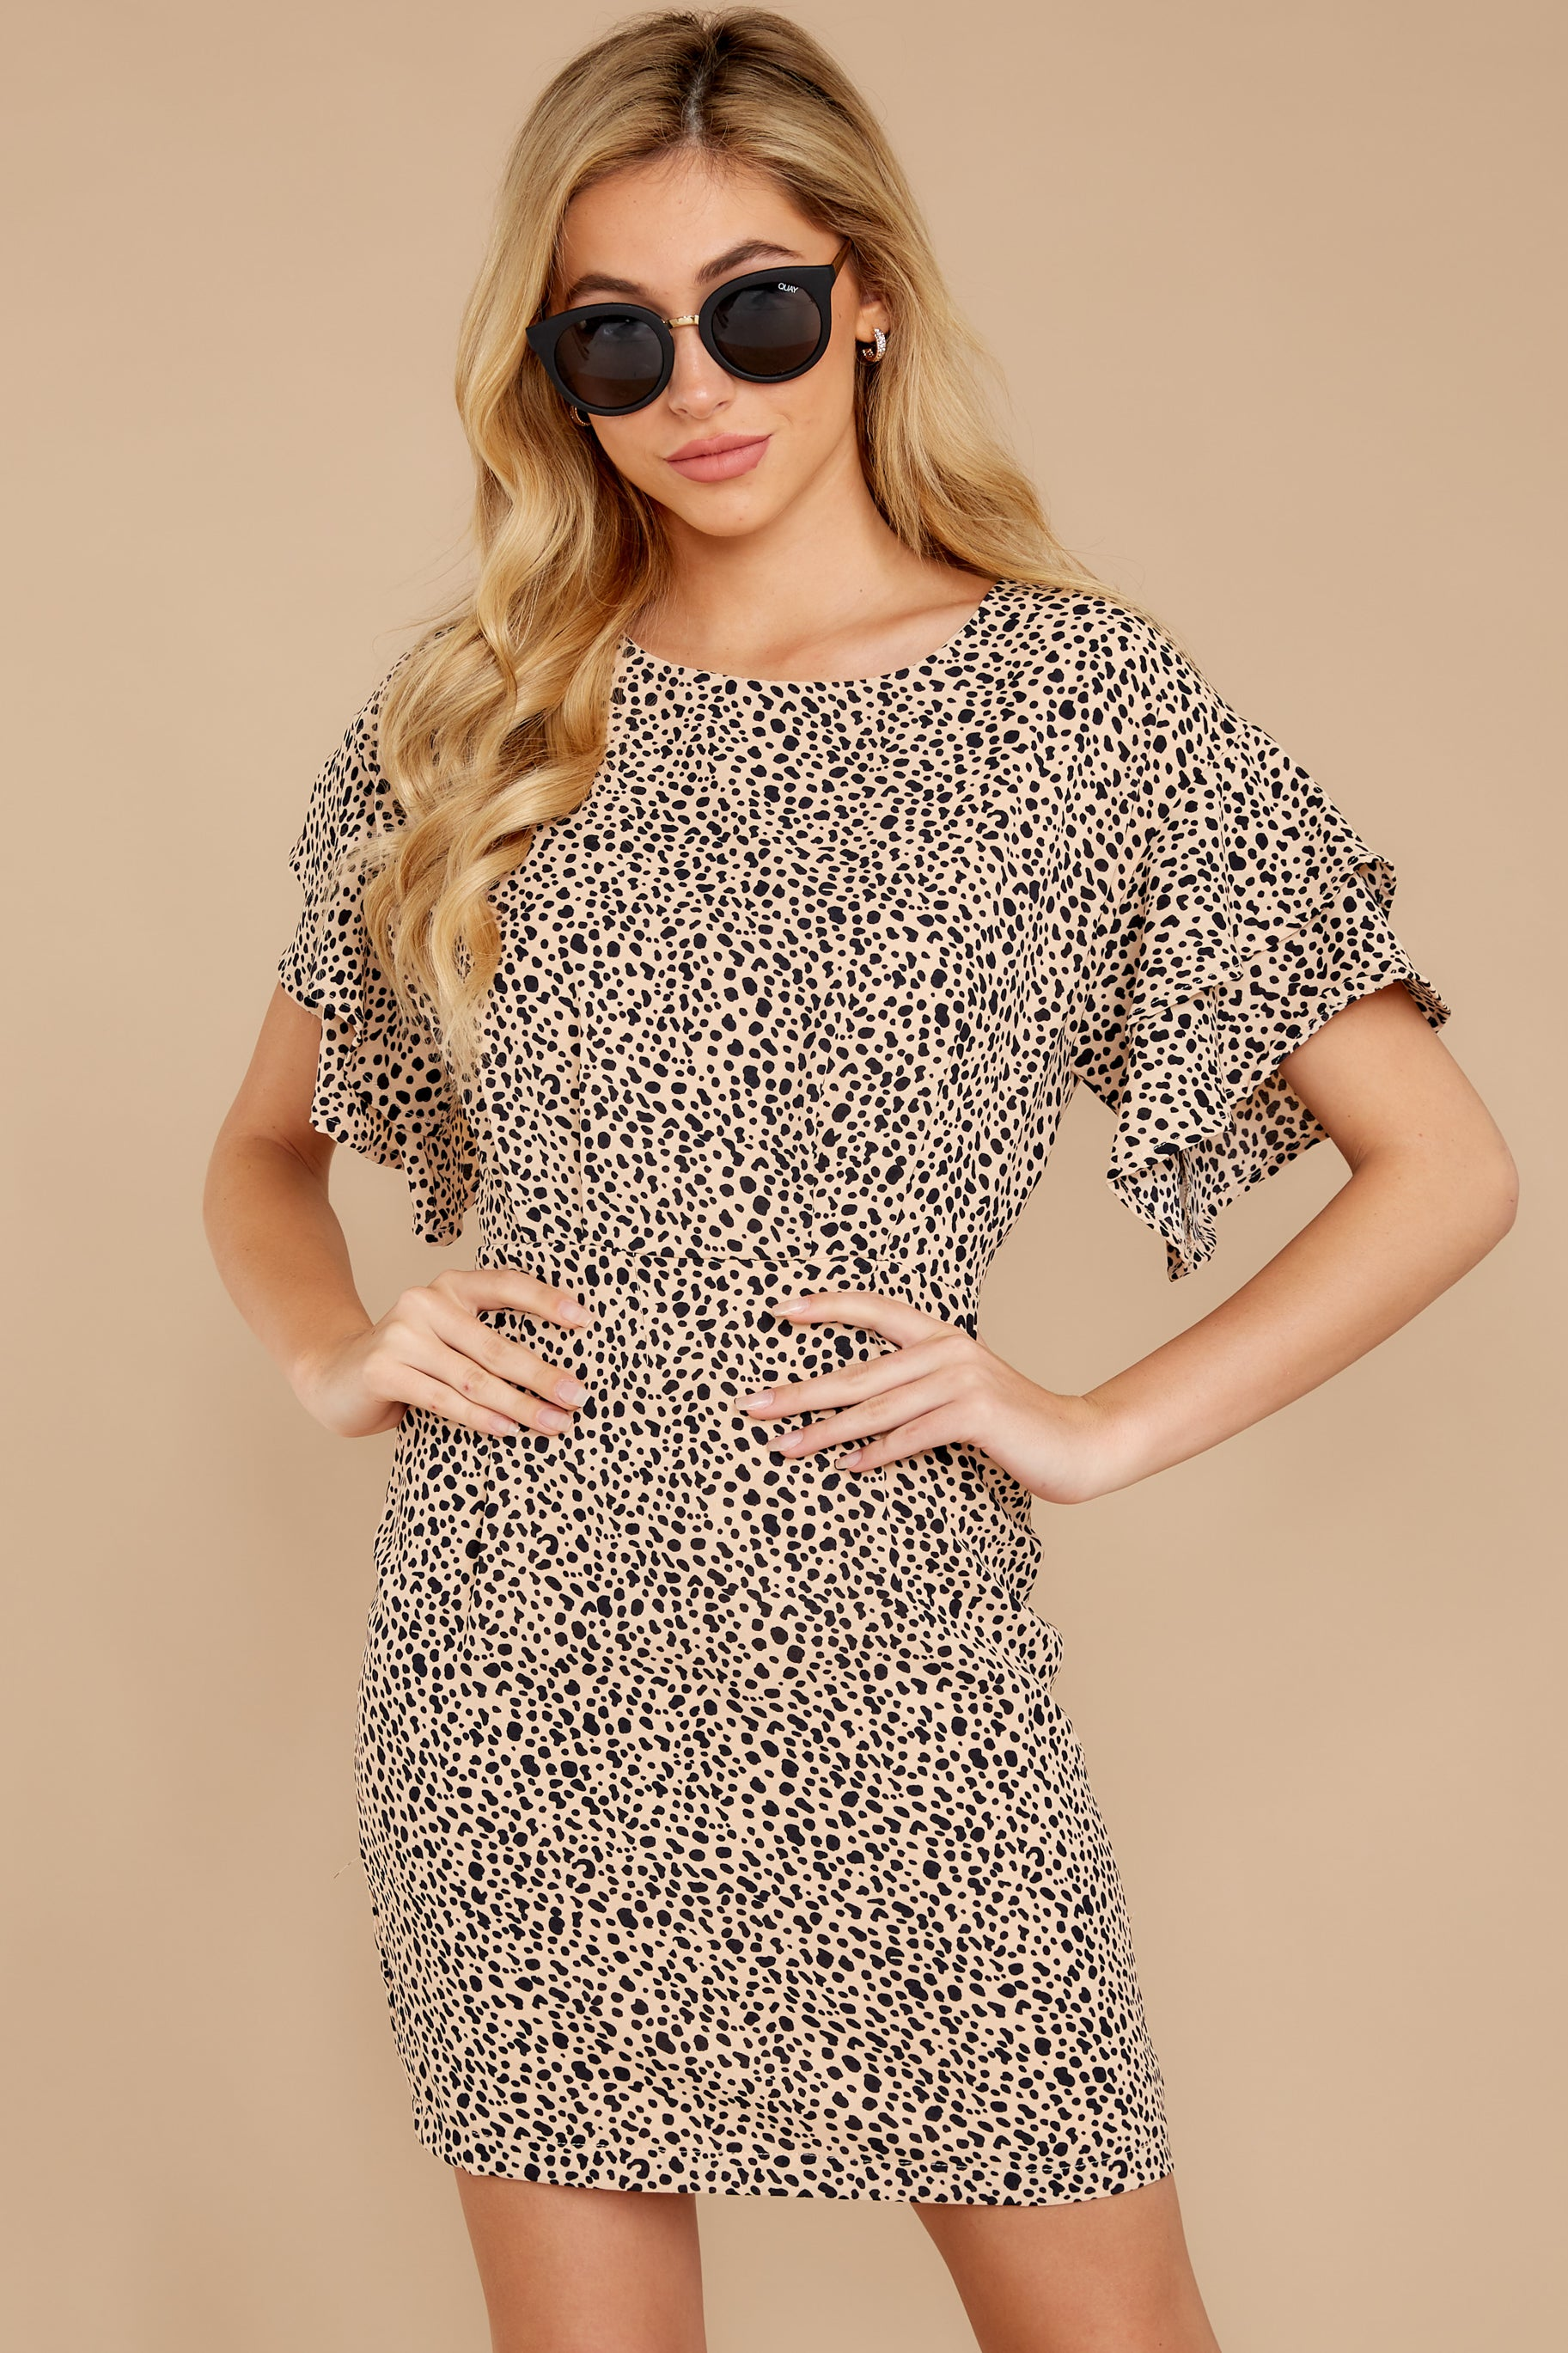 Chasing You Beige Cheetah Print Dress